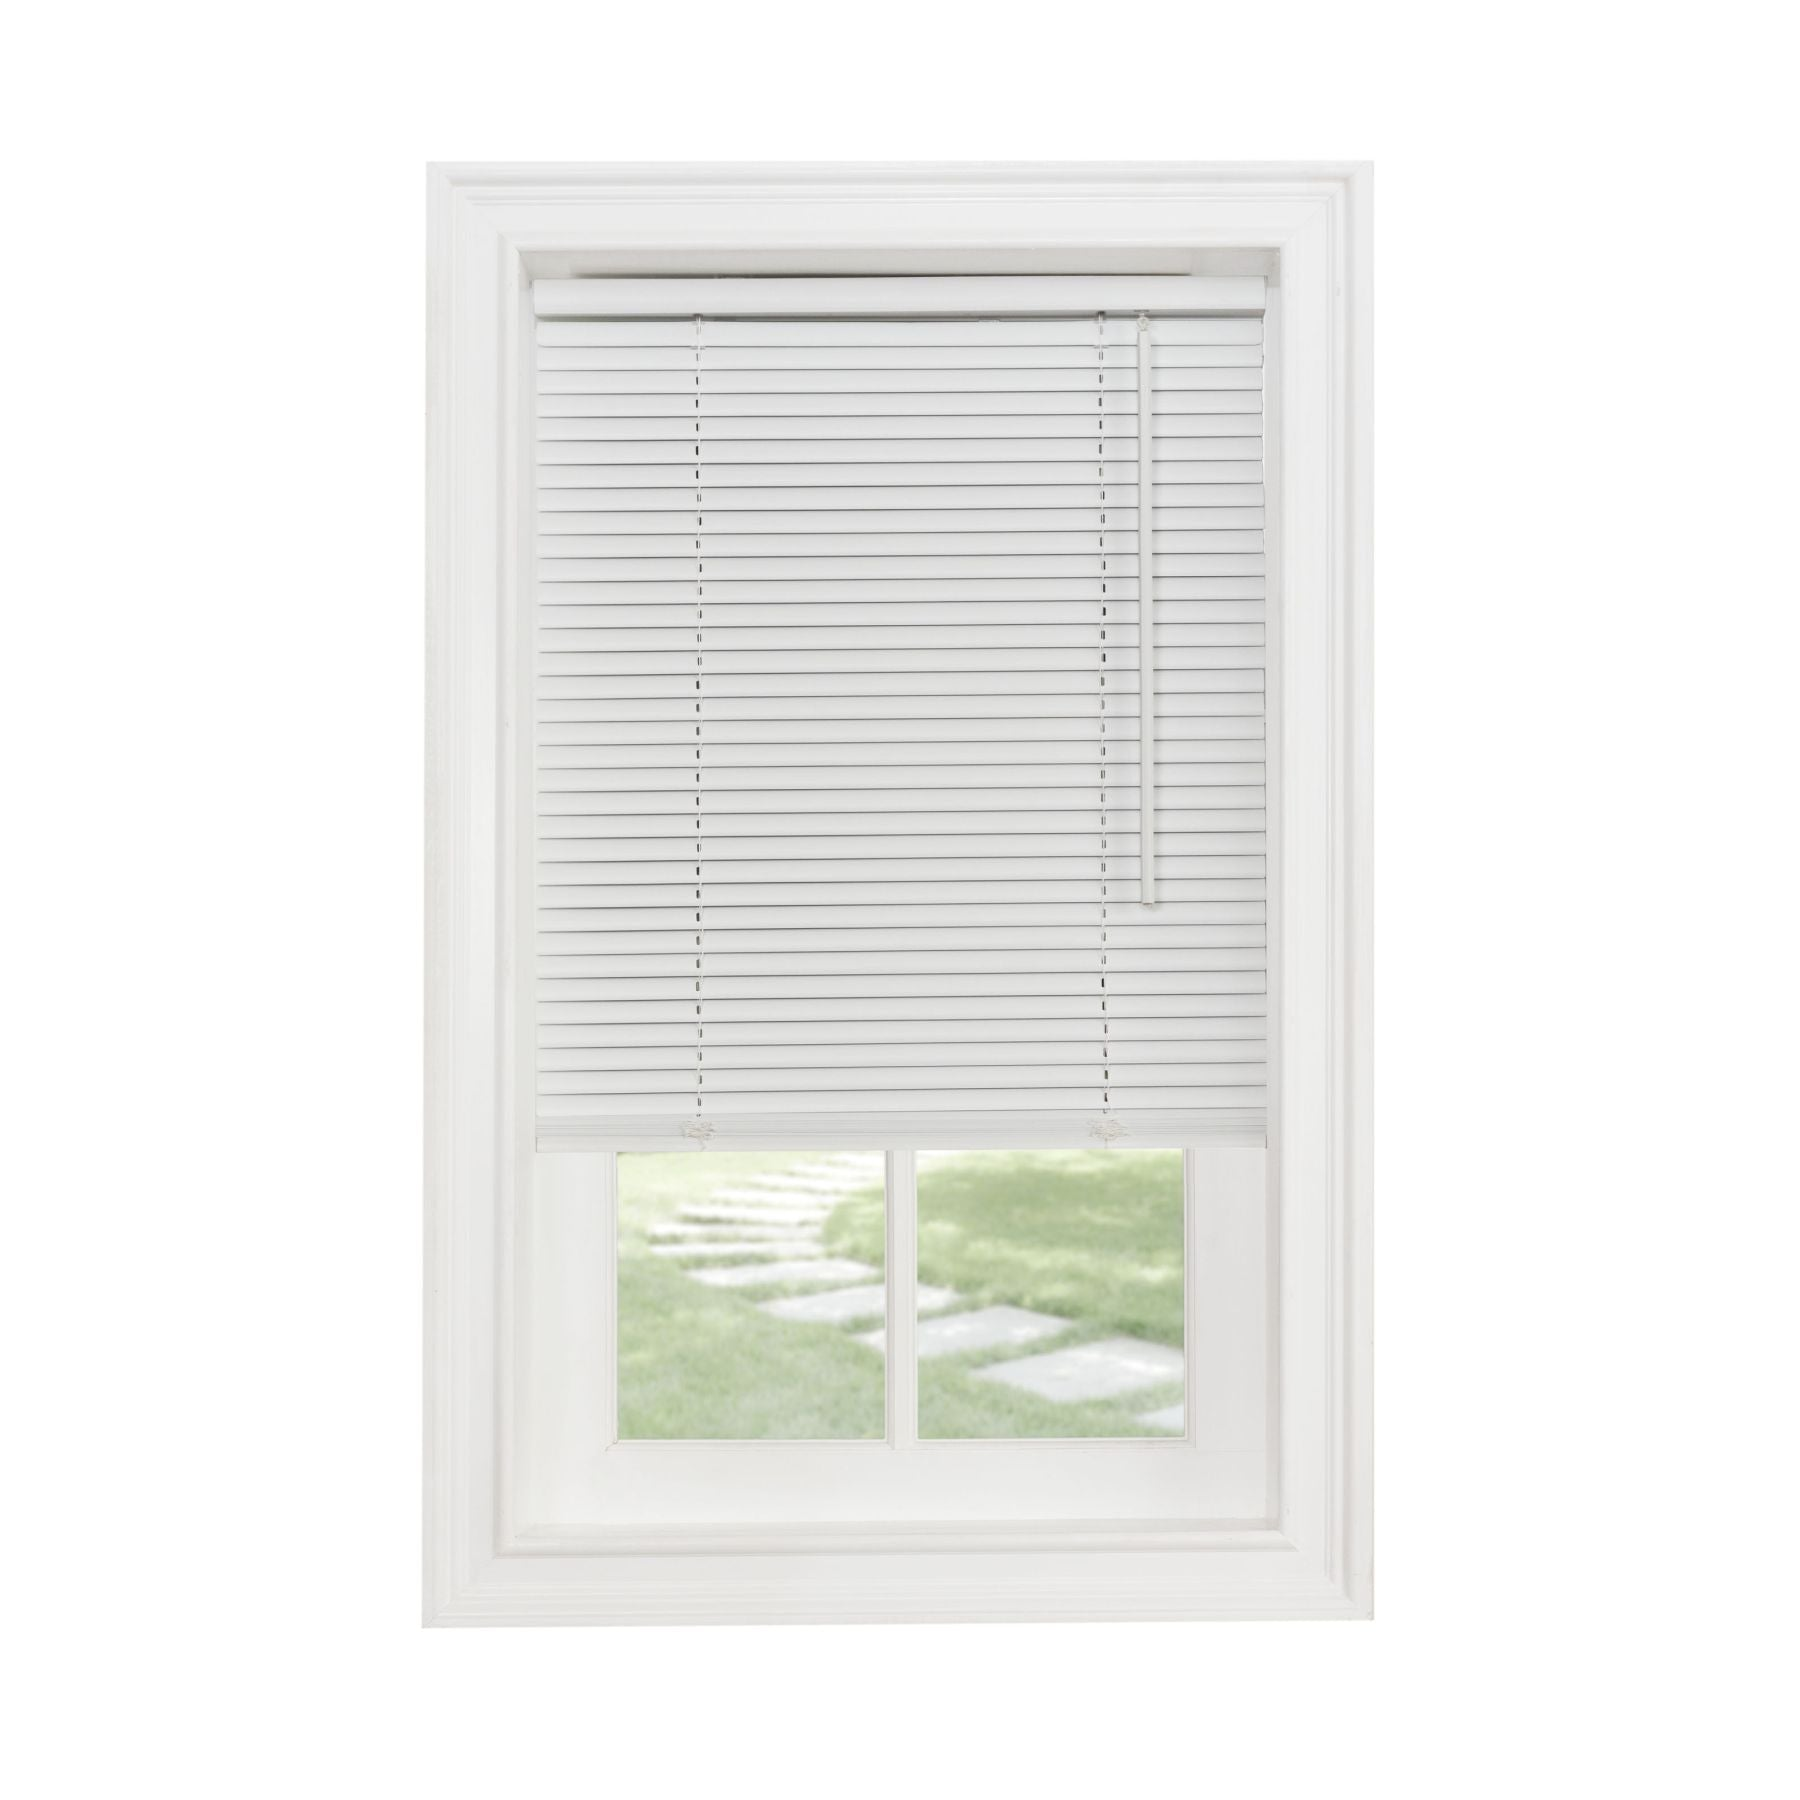 "Traditional Elegance Cordless Sunrise 1"" Light Filtering Mini Blind 35x64 - White"